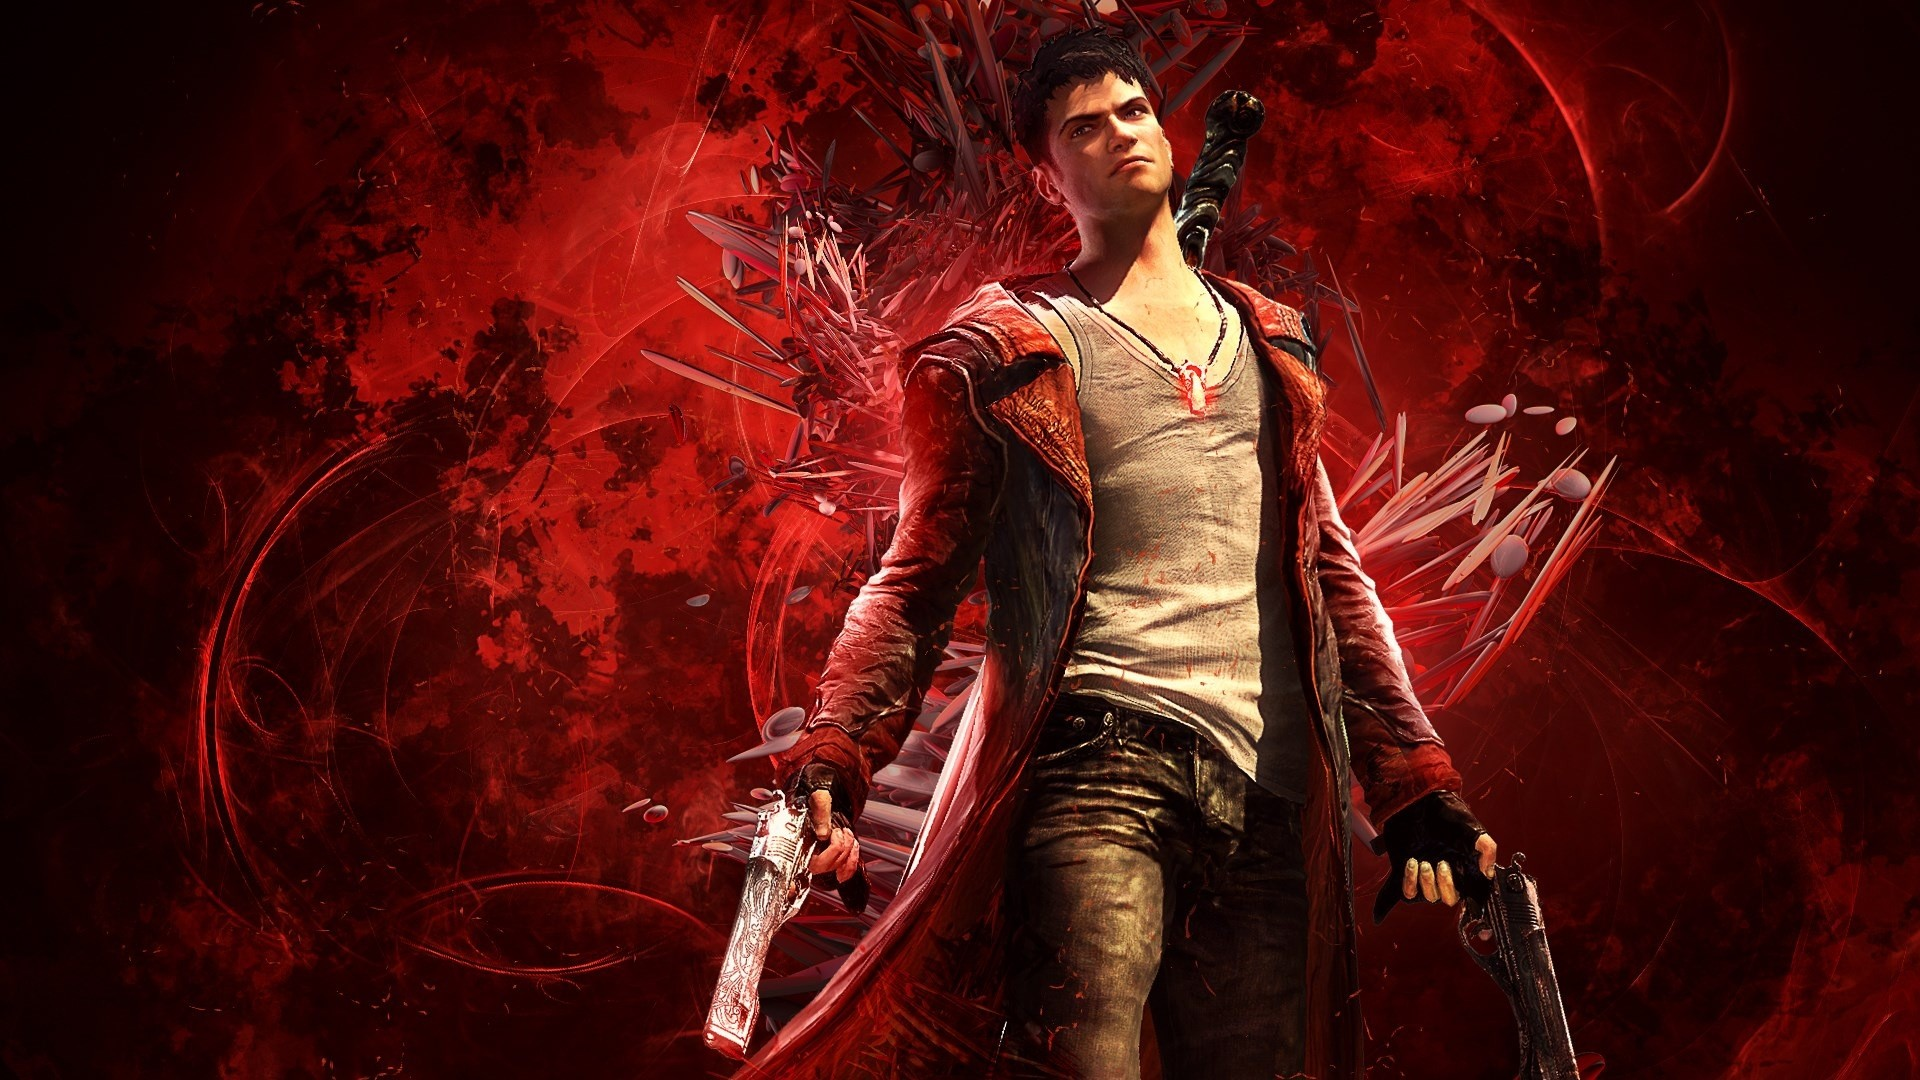 Devil may cry wallpaper hd 65 images - Devil may cry hd pics ...